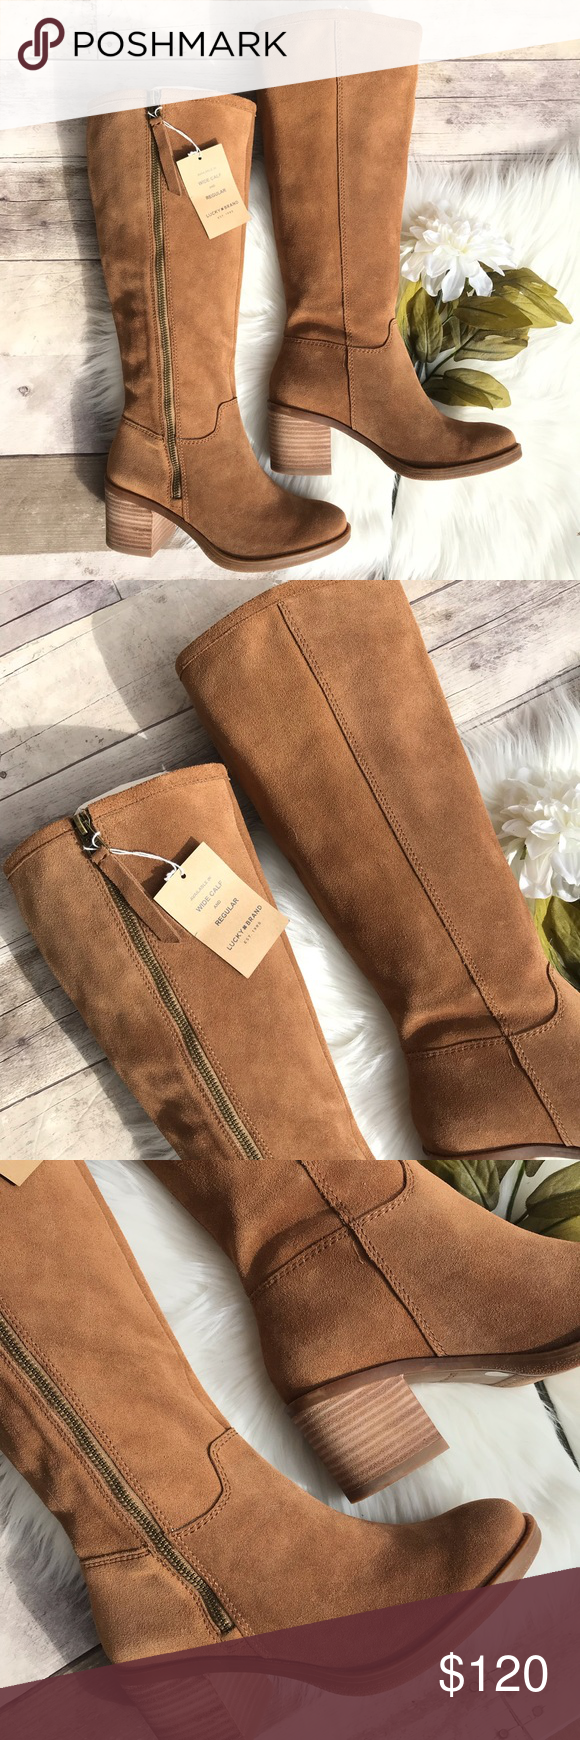 "4857bbe3345 NWOB Lucky Brand Resper Knee High Boot SZ 6.5 Brand  Lucky Brand Size  6.5M Wide  calf (WC) Color  ""Honey 01"" Materials  Suede upper"